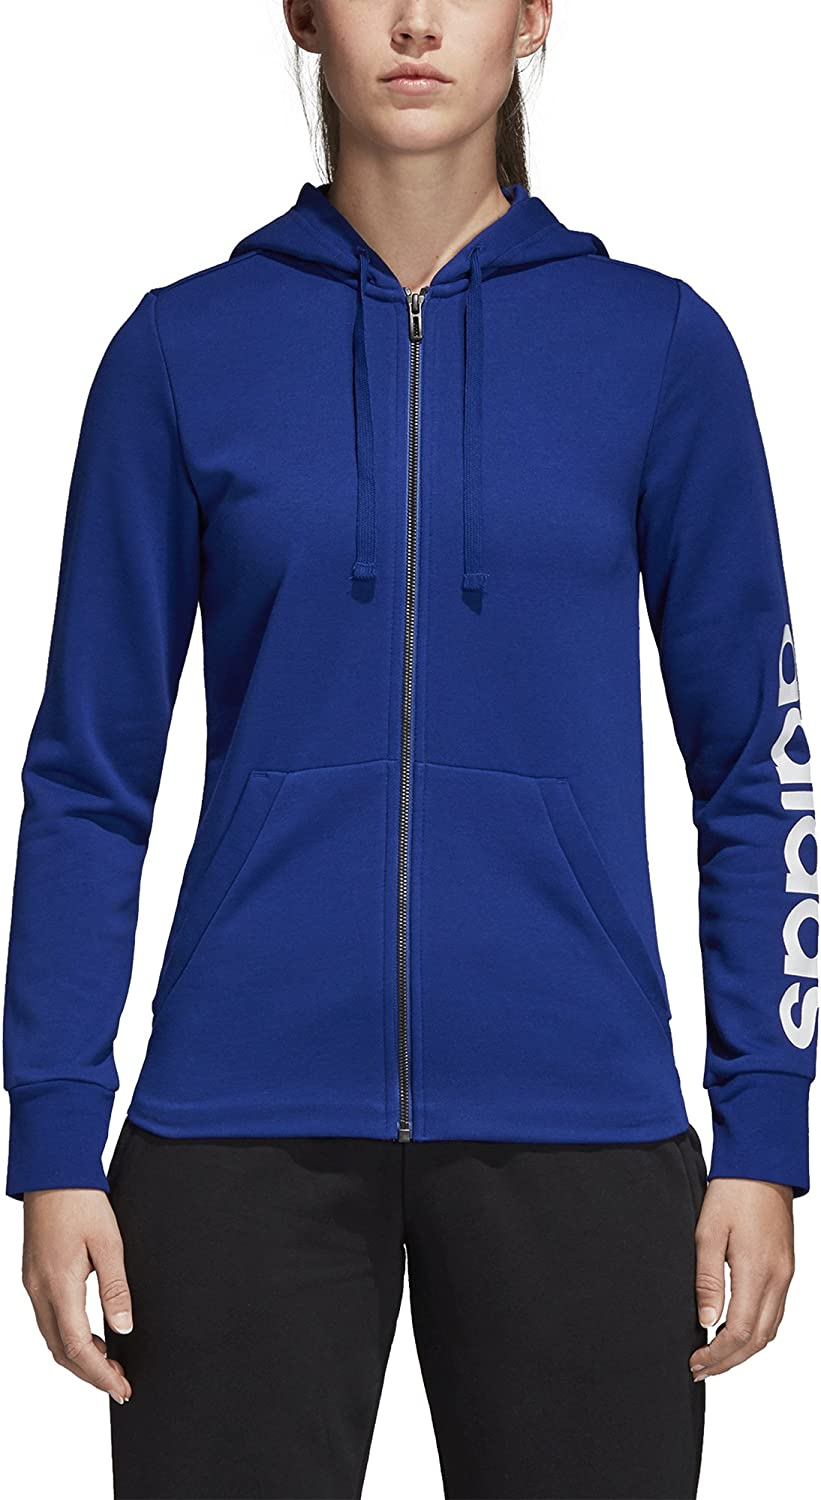 adidas Athletics Essentials Linear Full-Zip Hoodie - Sweat-Shirts à Capuche - Femme Encre Mystérieuse/Blanche.